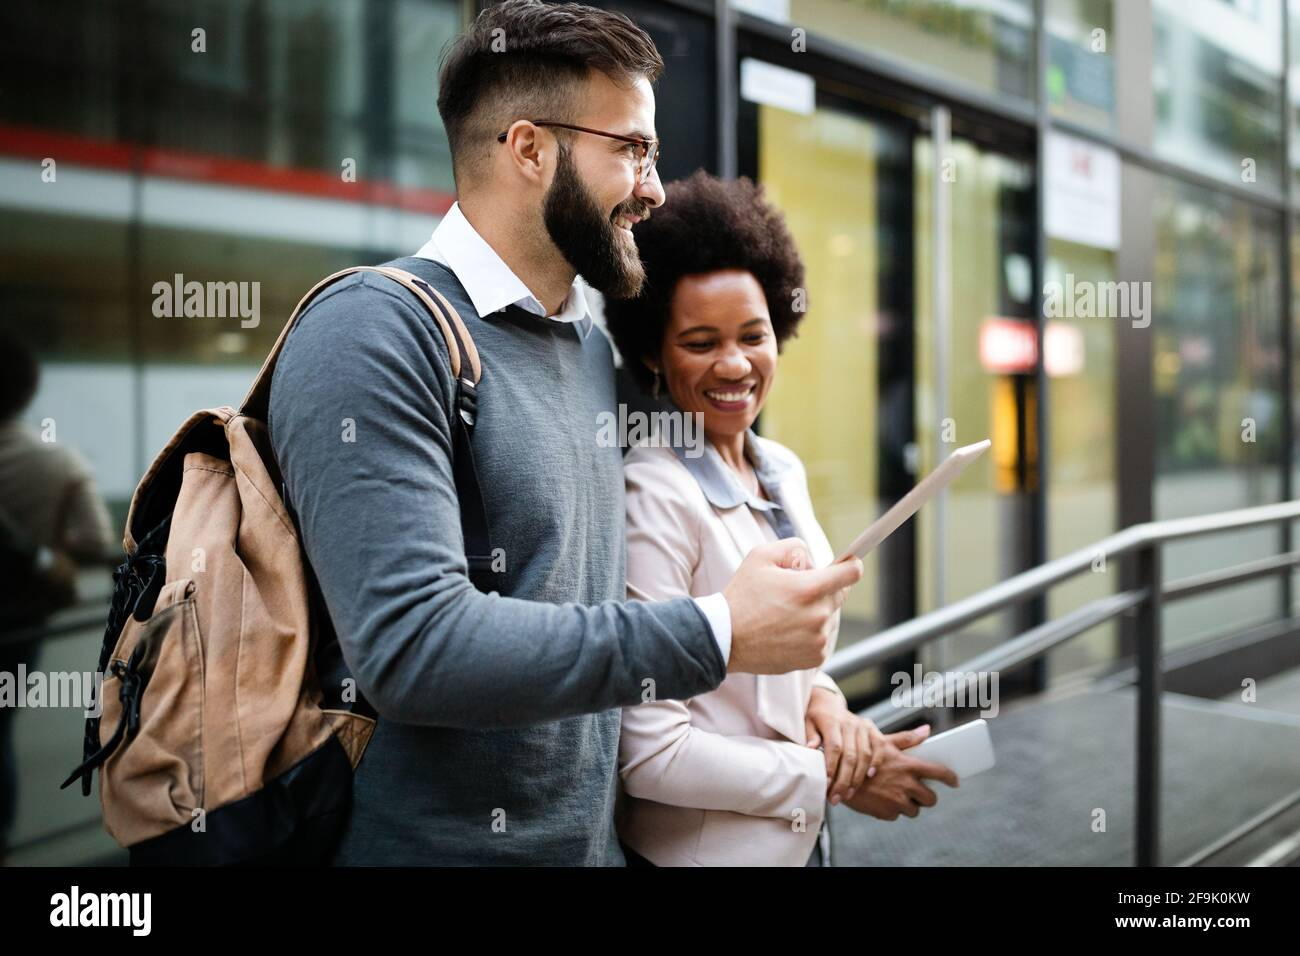 Happy business people, students having fun, smiling, talking in the city Stock Photo